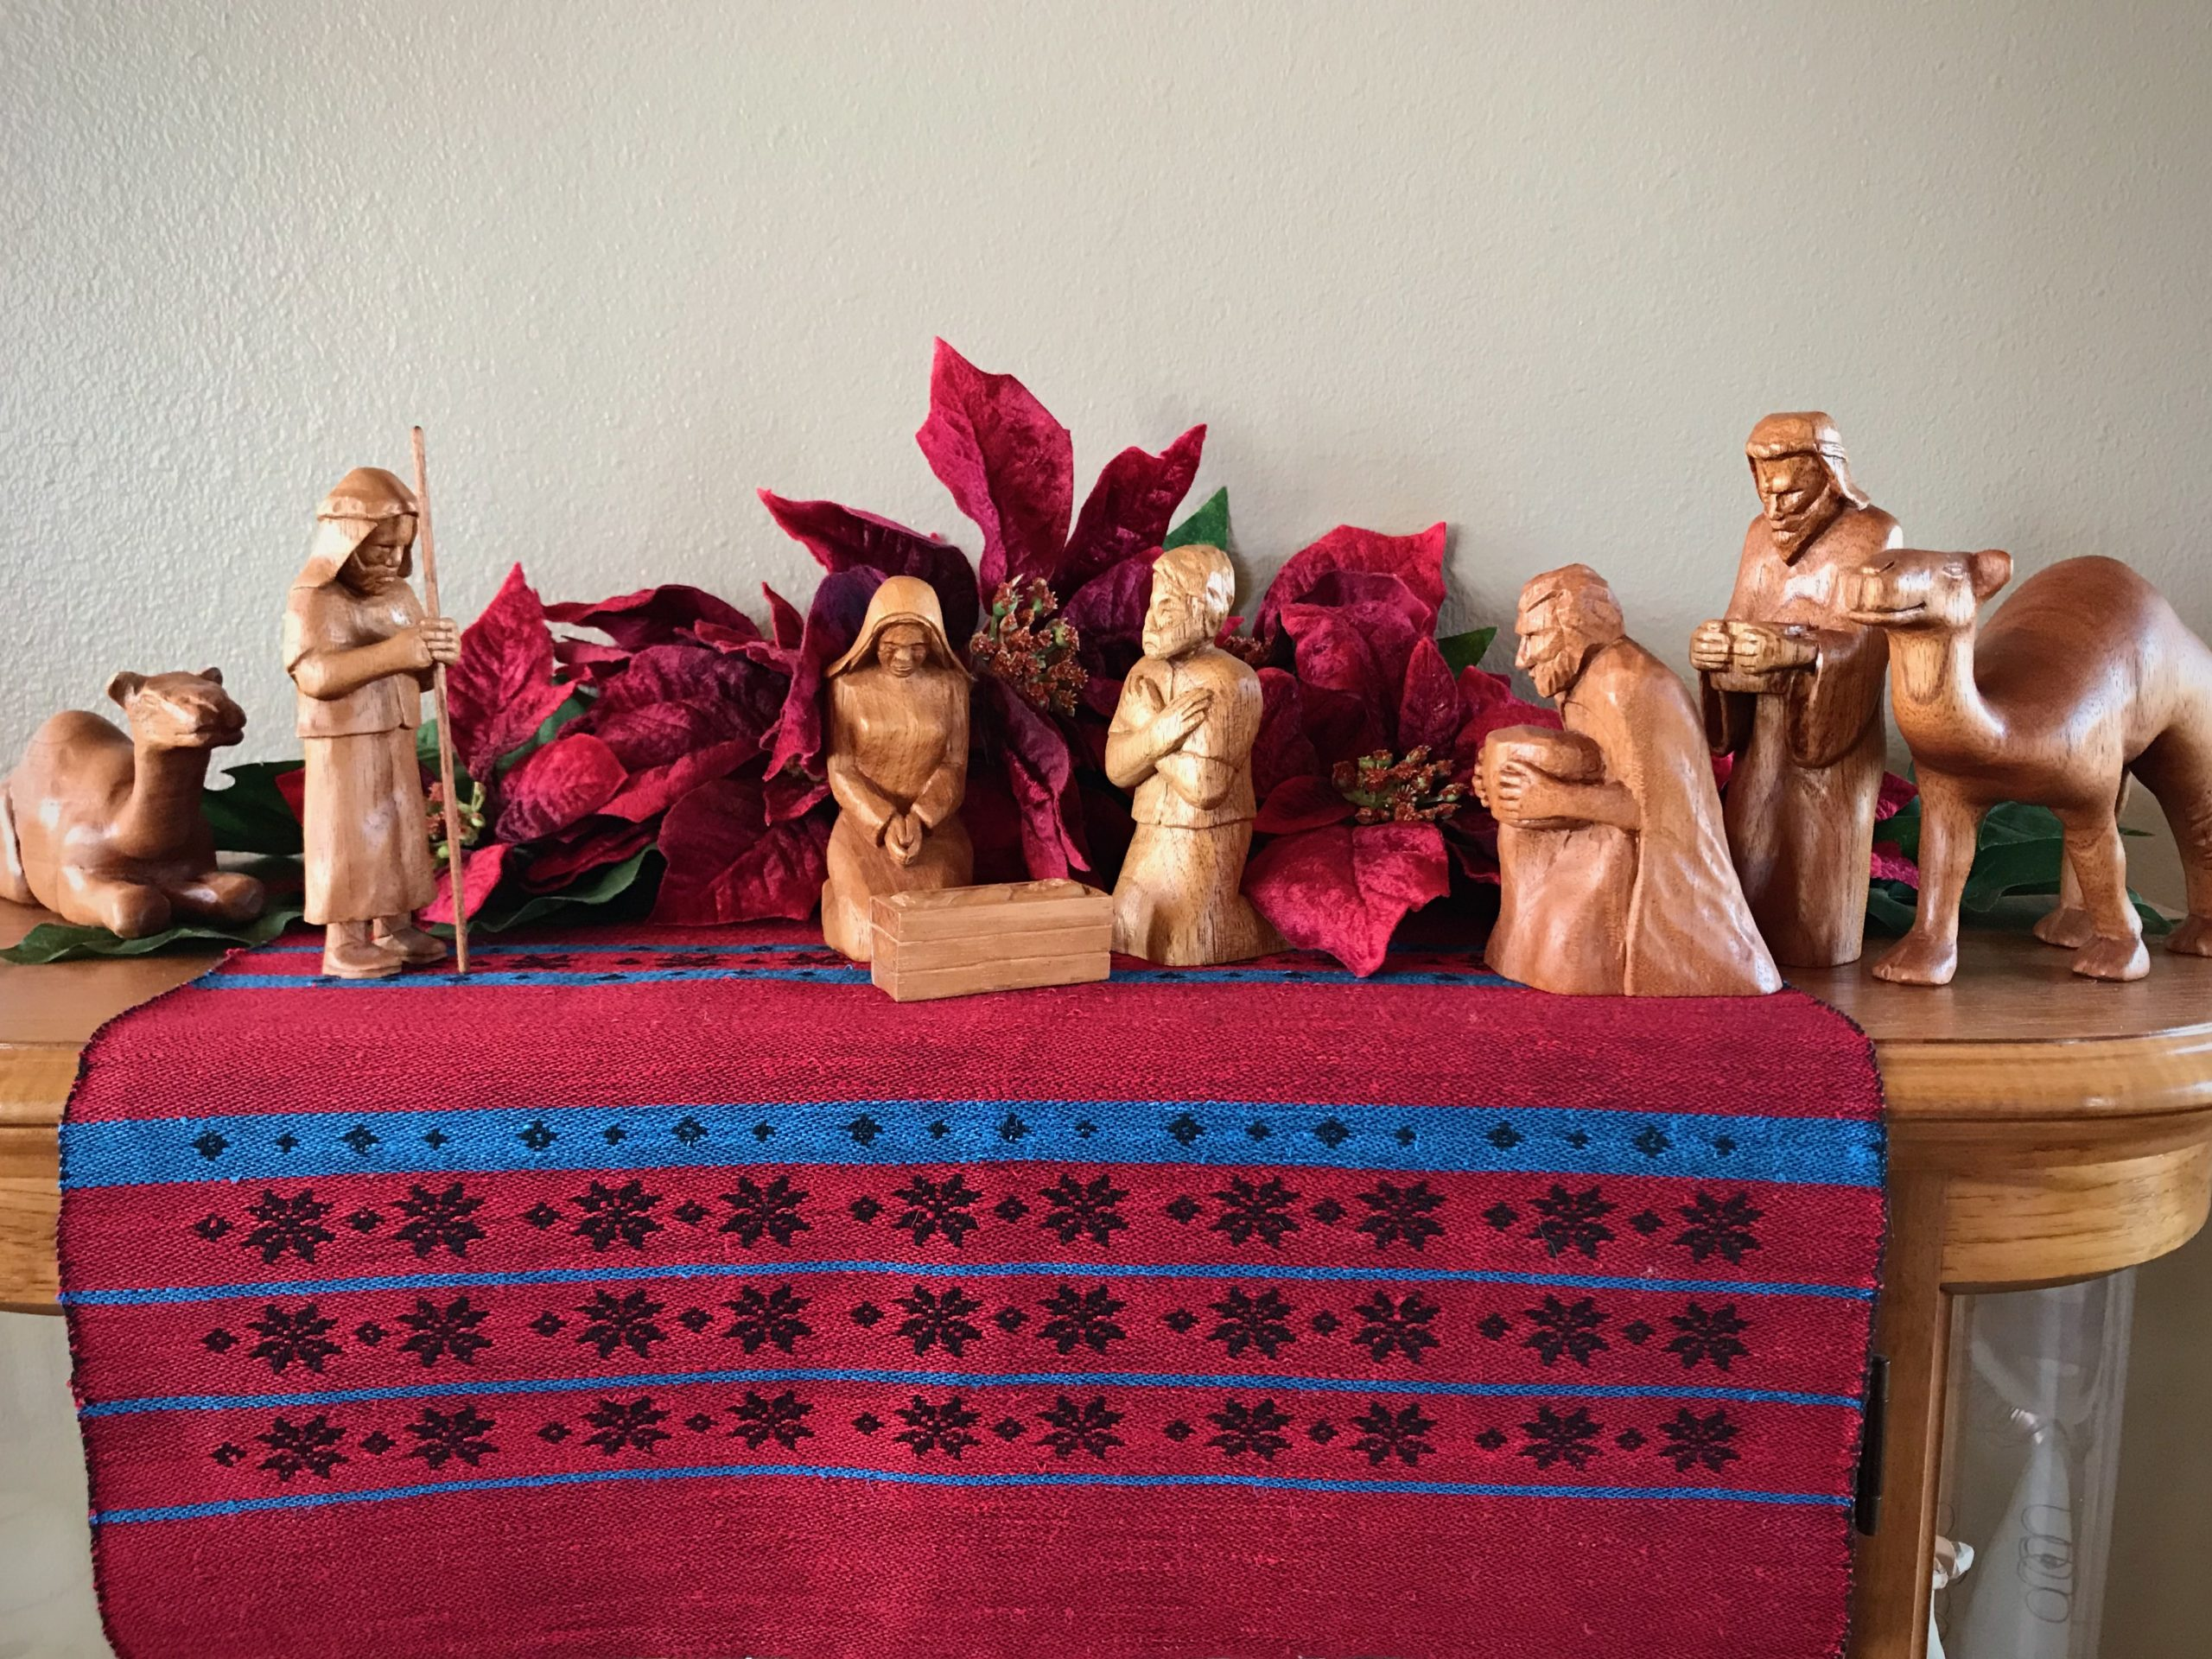 Hand-carved Nativity. Drawloom-woven runner.